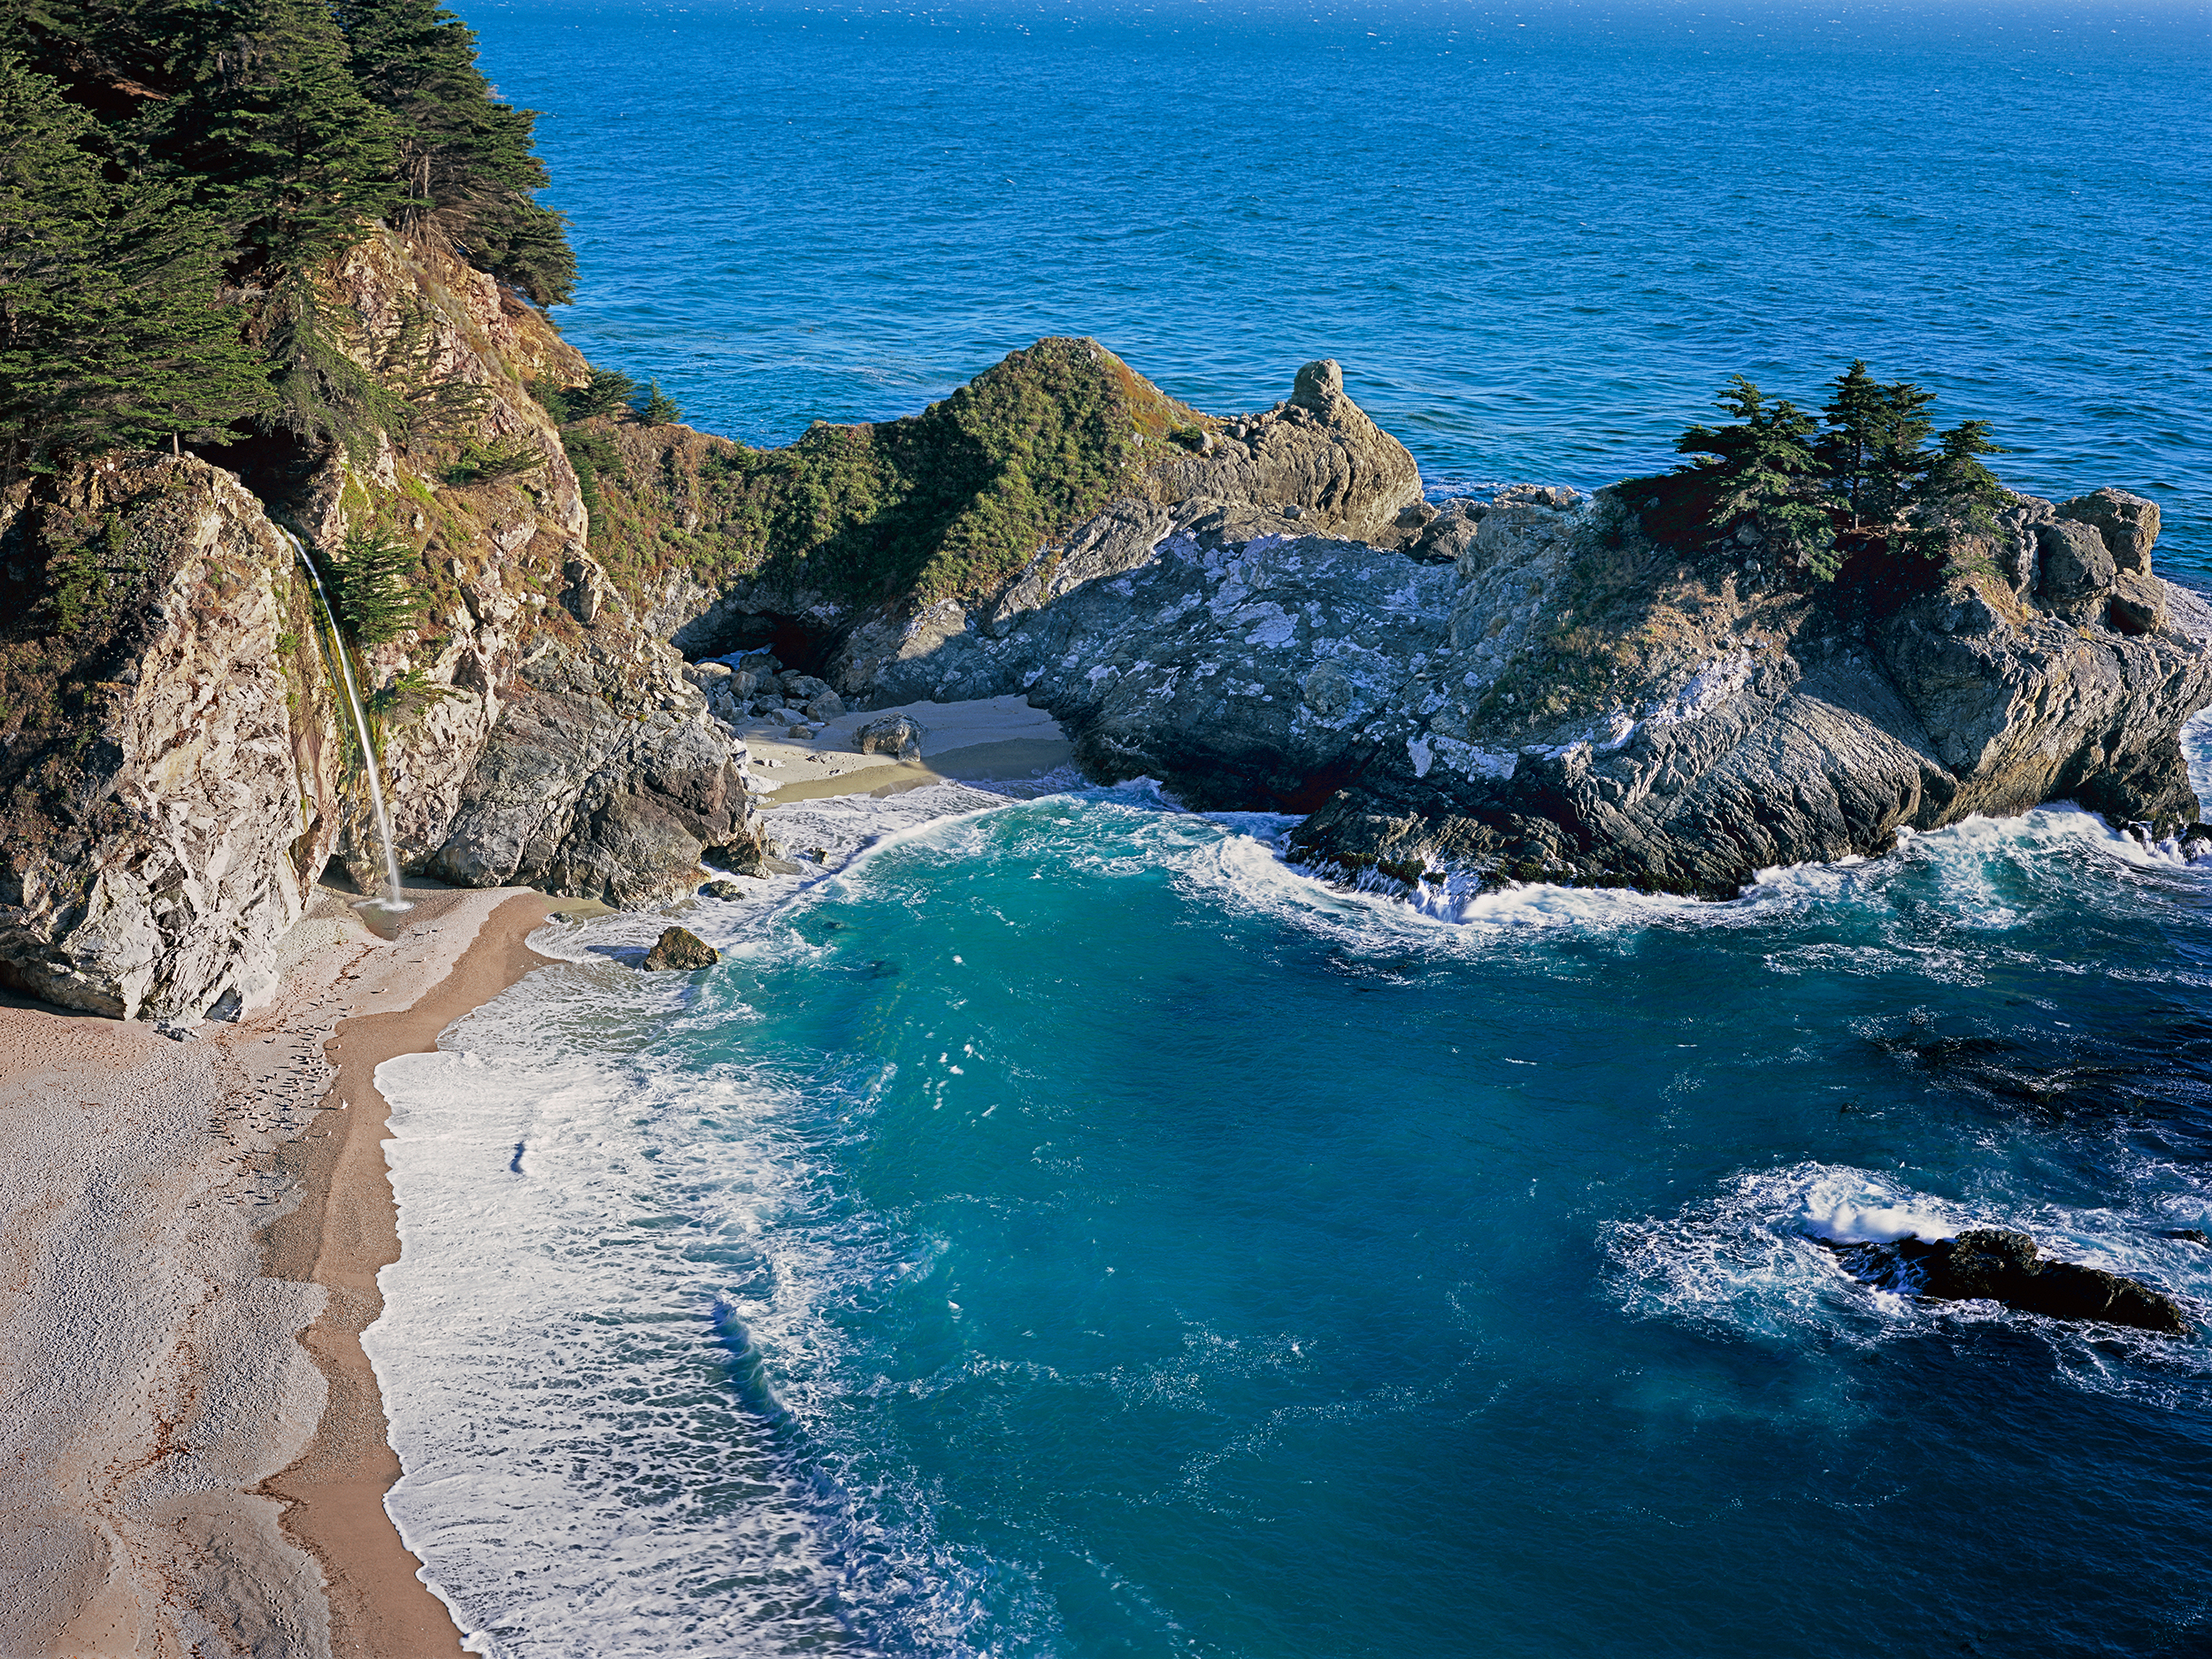 McWay Falls - Julia Pfeiffer Burns State Park (100)